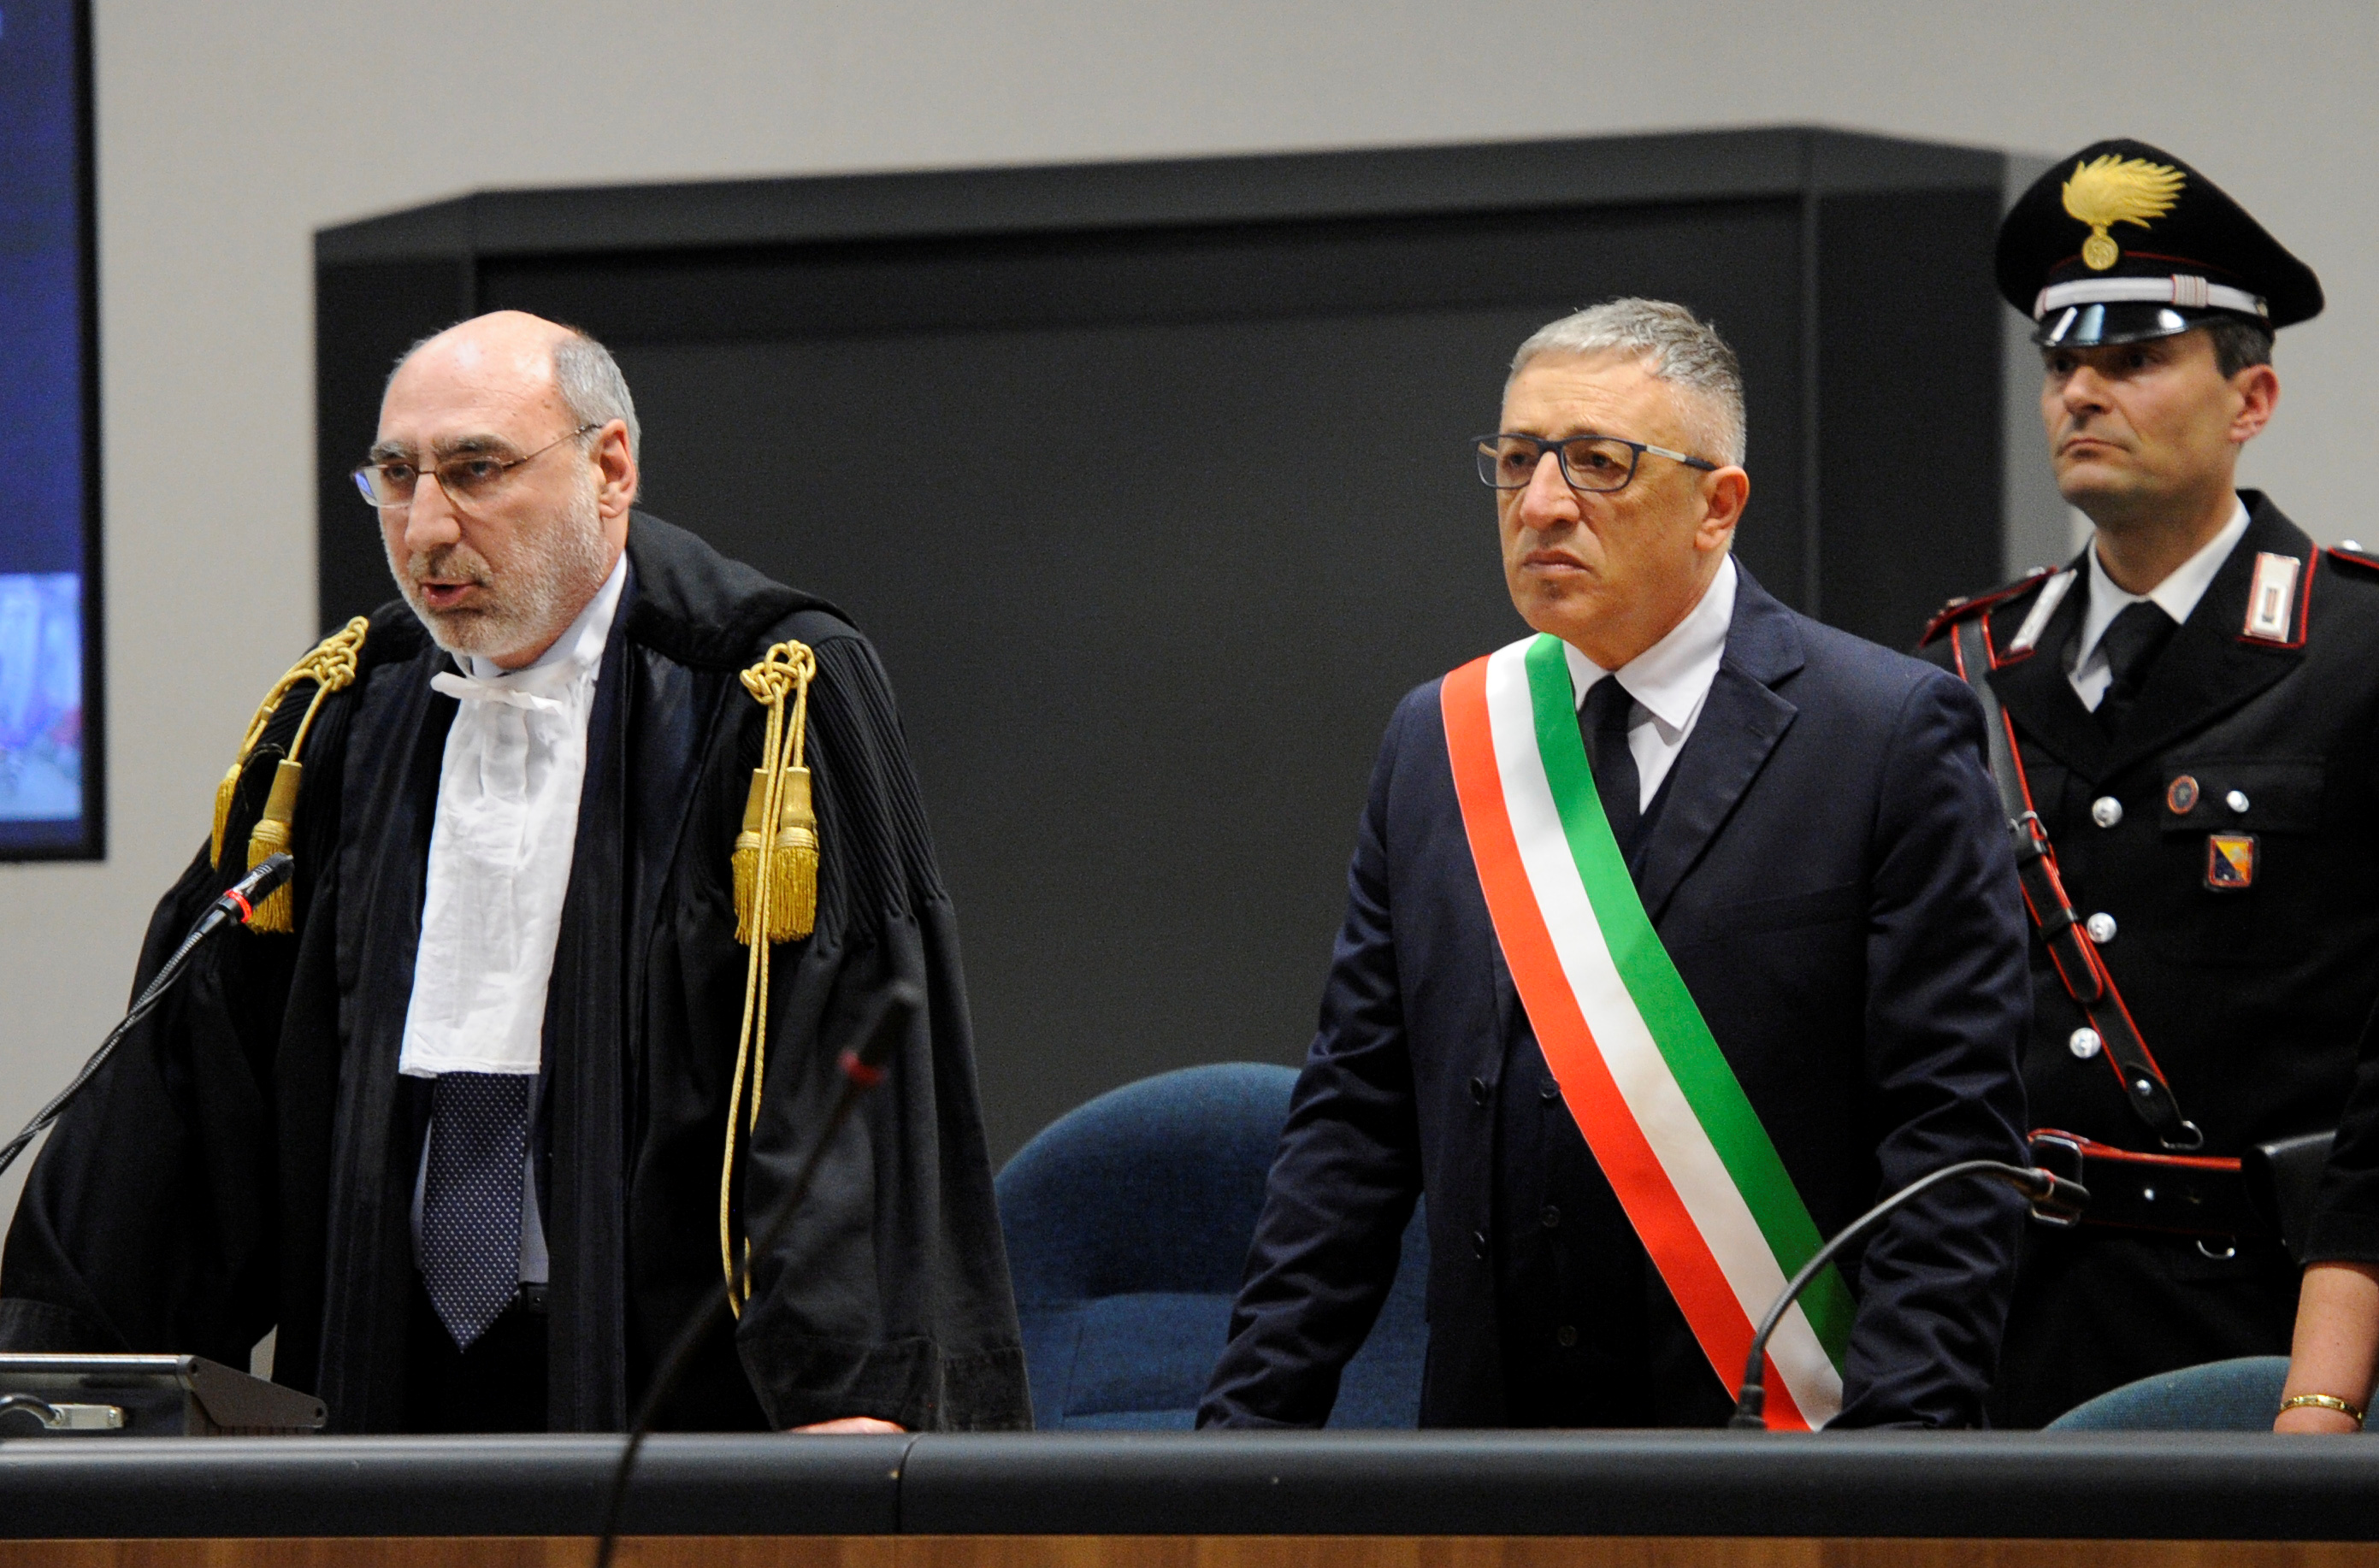 Italian ruling that victim too ugly to be raped sparks outrage, probe